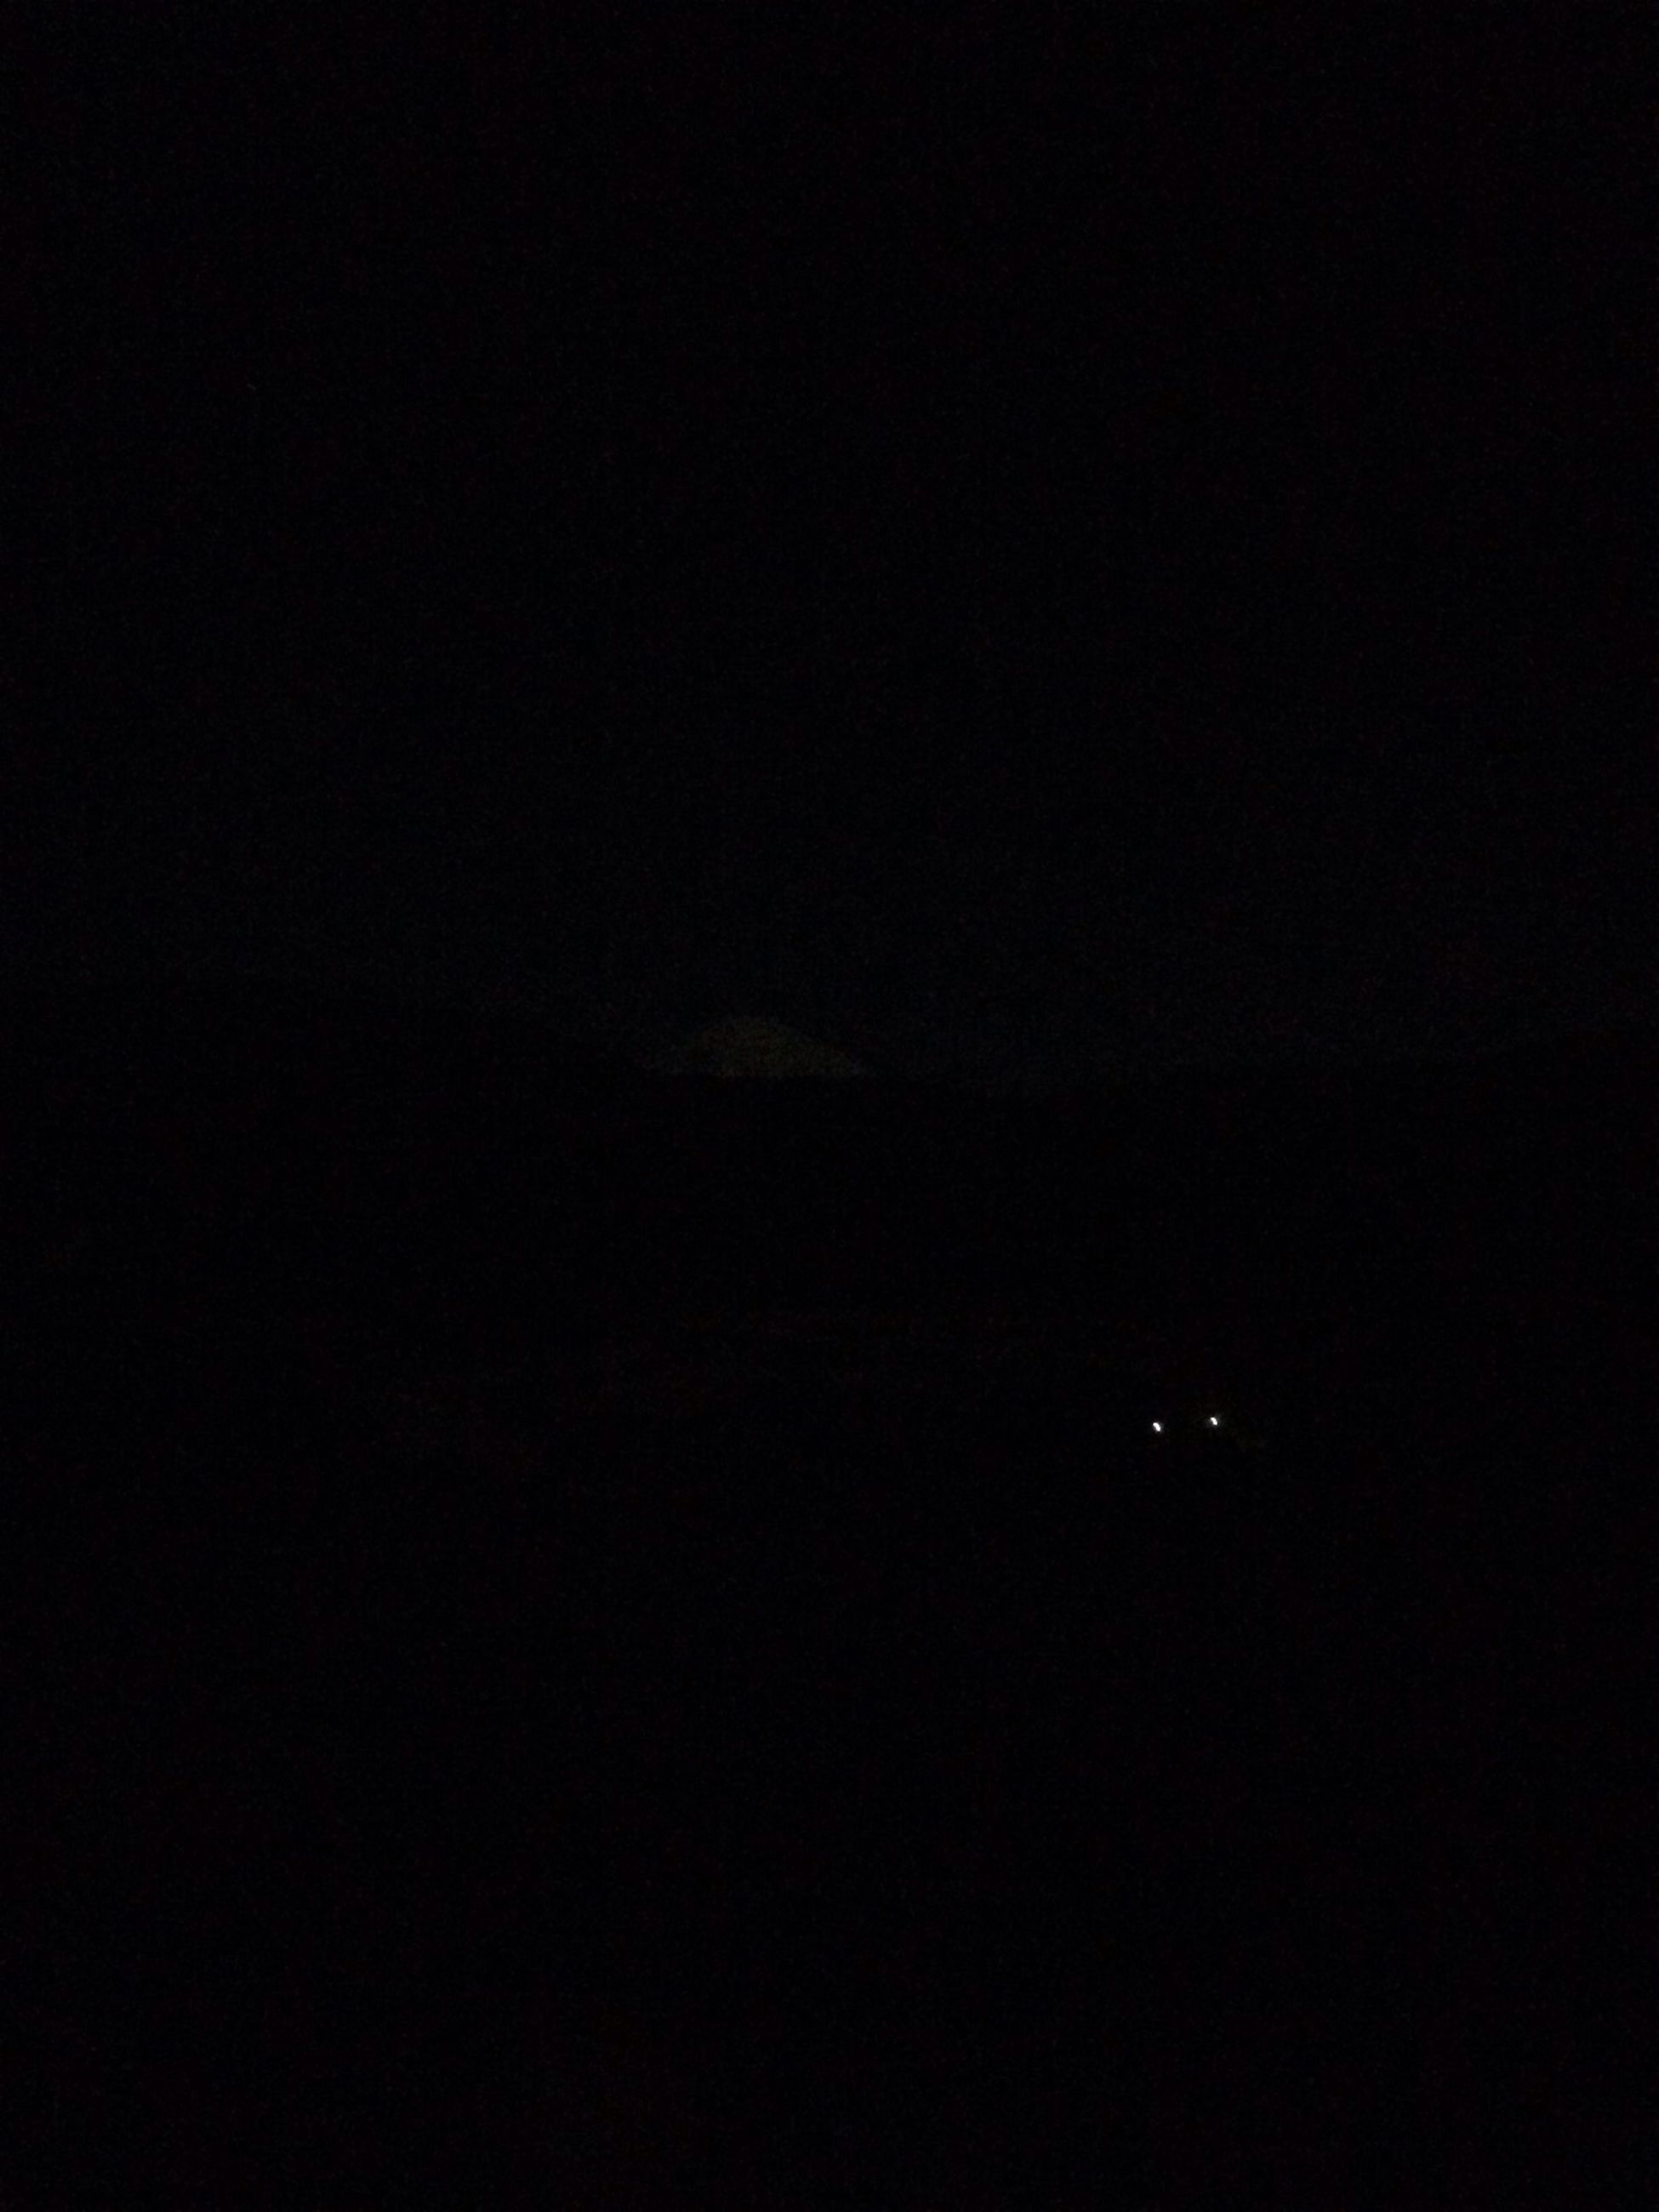 night, copy space, dark, silhouette, low angle view, mystery, illuminated, standing, clear sky, lifestyles, moon, outdoors, outline, tranquility, sky, light - natural phenomenon, nature, darkness